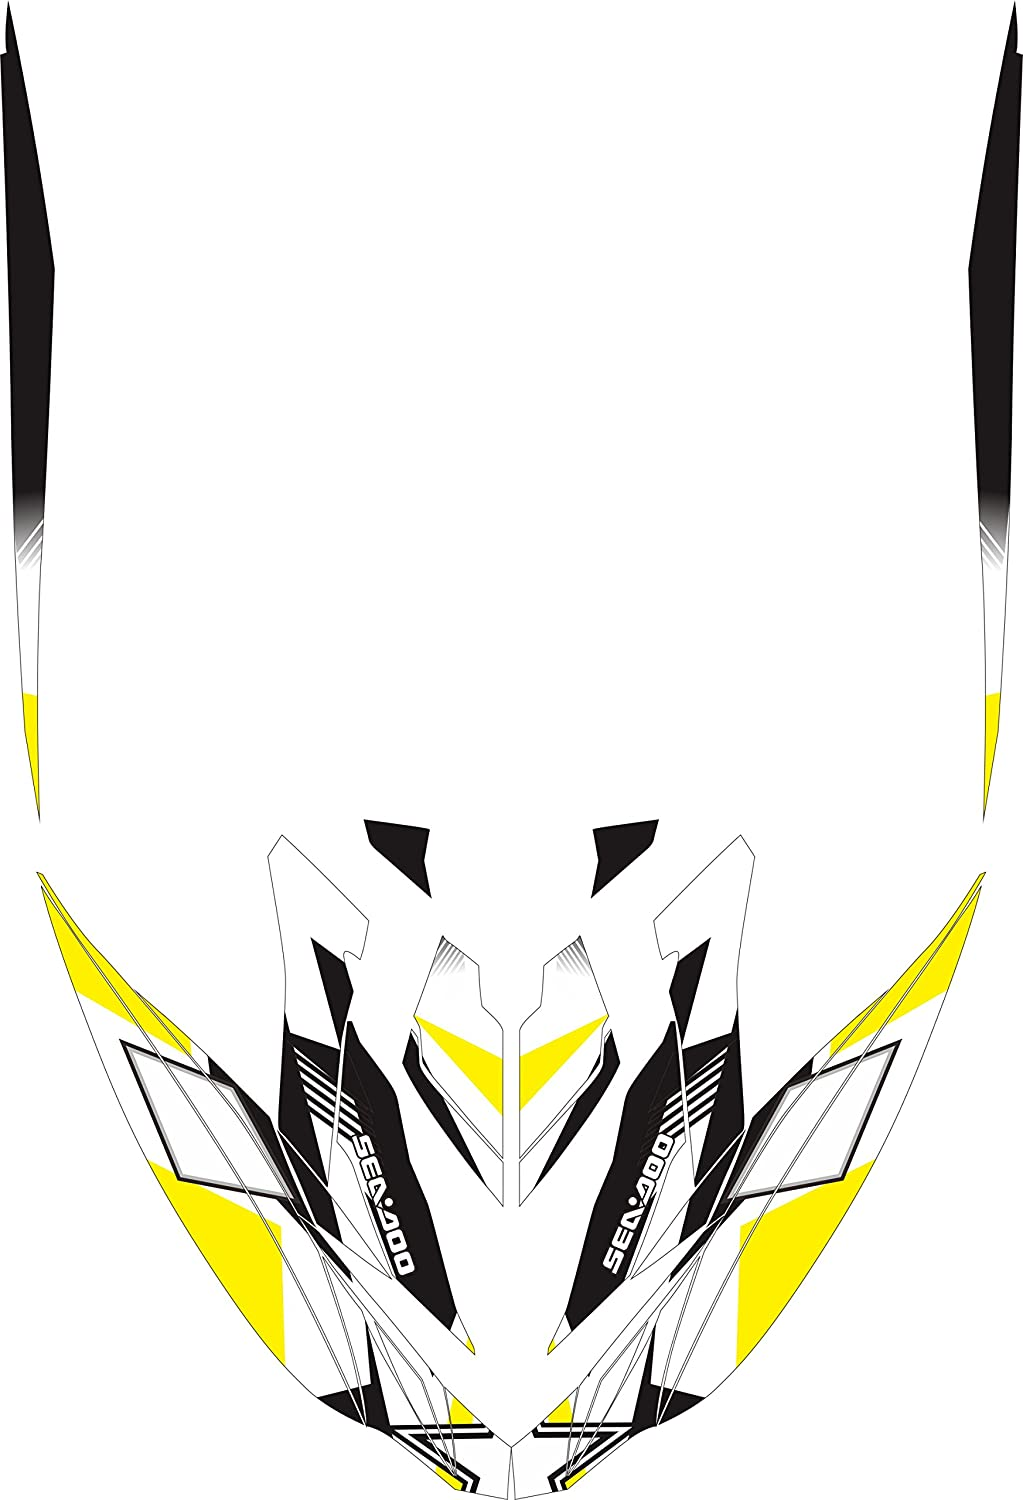 RXP 007 sea-doo rxp-x 260rs 2014 2015ジェットスキーデカールステッカーグラフィックキット B071GT6DCQ